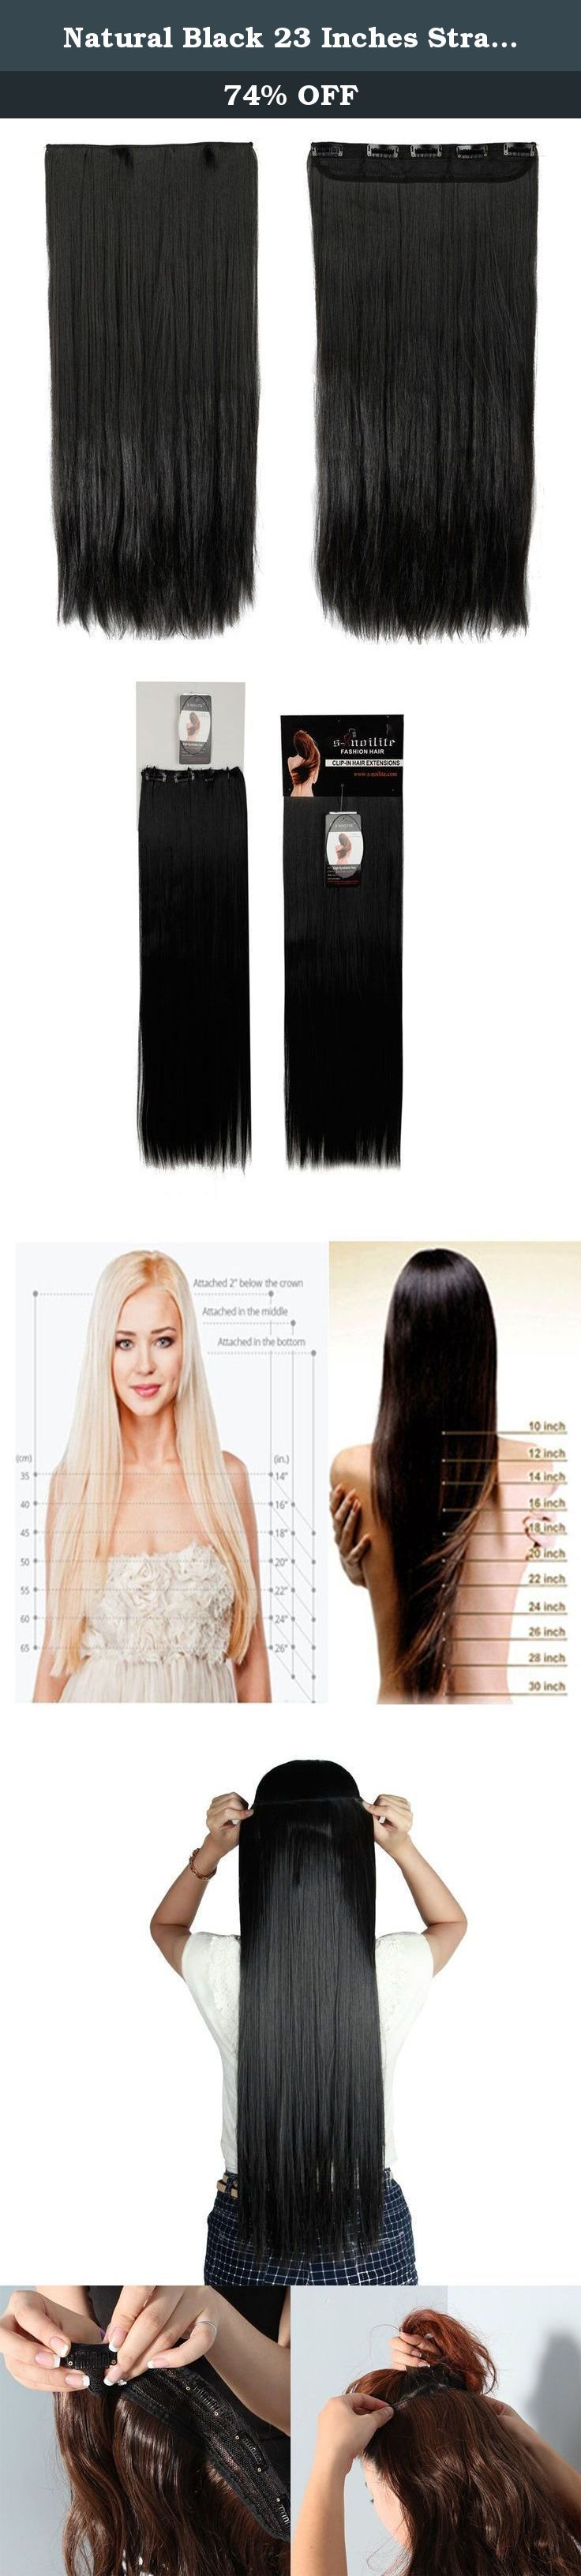 Natural Black 23 Inches Straight One Piece Clip in Hair Extensions (5 Clips) Clip Ins Hairpiece for Women Lady Girl. This is a one piece clip in hair extensions made from premium synthetic fibres. There are five hair clips along the top for easy, secure and discreet attachment to your hair. You can fit them yourself in the mirror, and have them in and a new style ready to go in minutes. This item is ideal for adding a little volume or length to your current style, and one weft is enough…